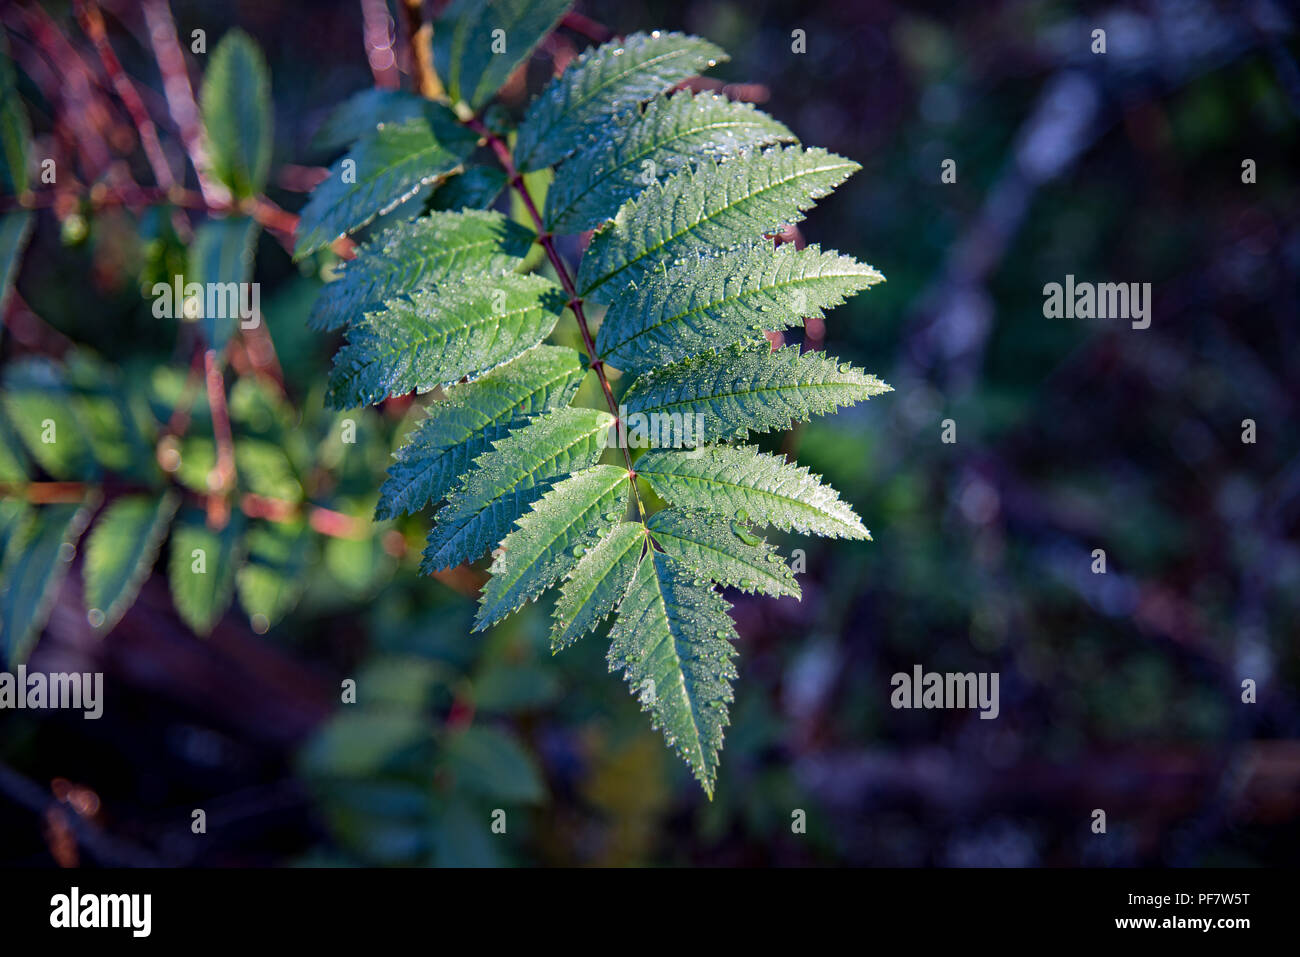 sun shines over a leaf from a rowan tree in a swedish forest - Stock Image